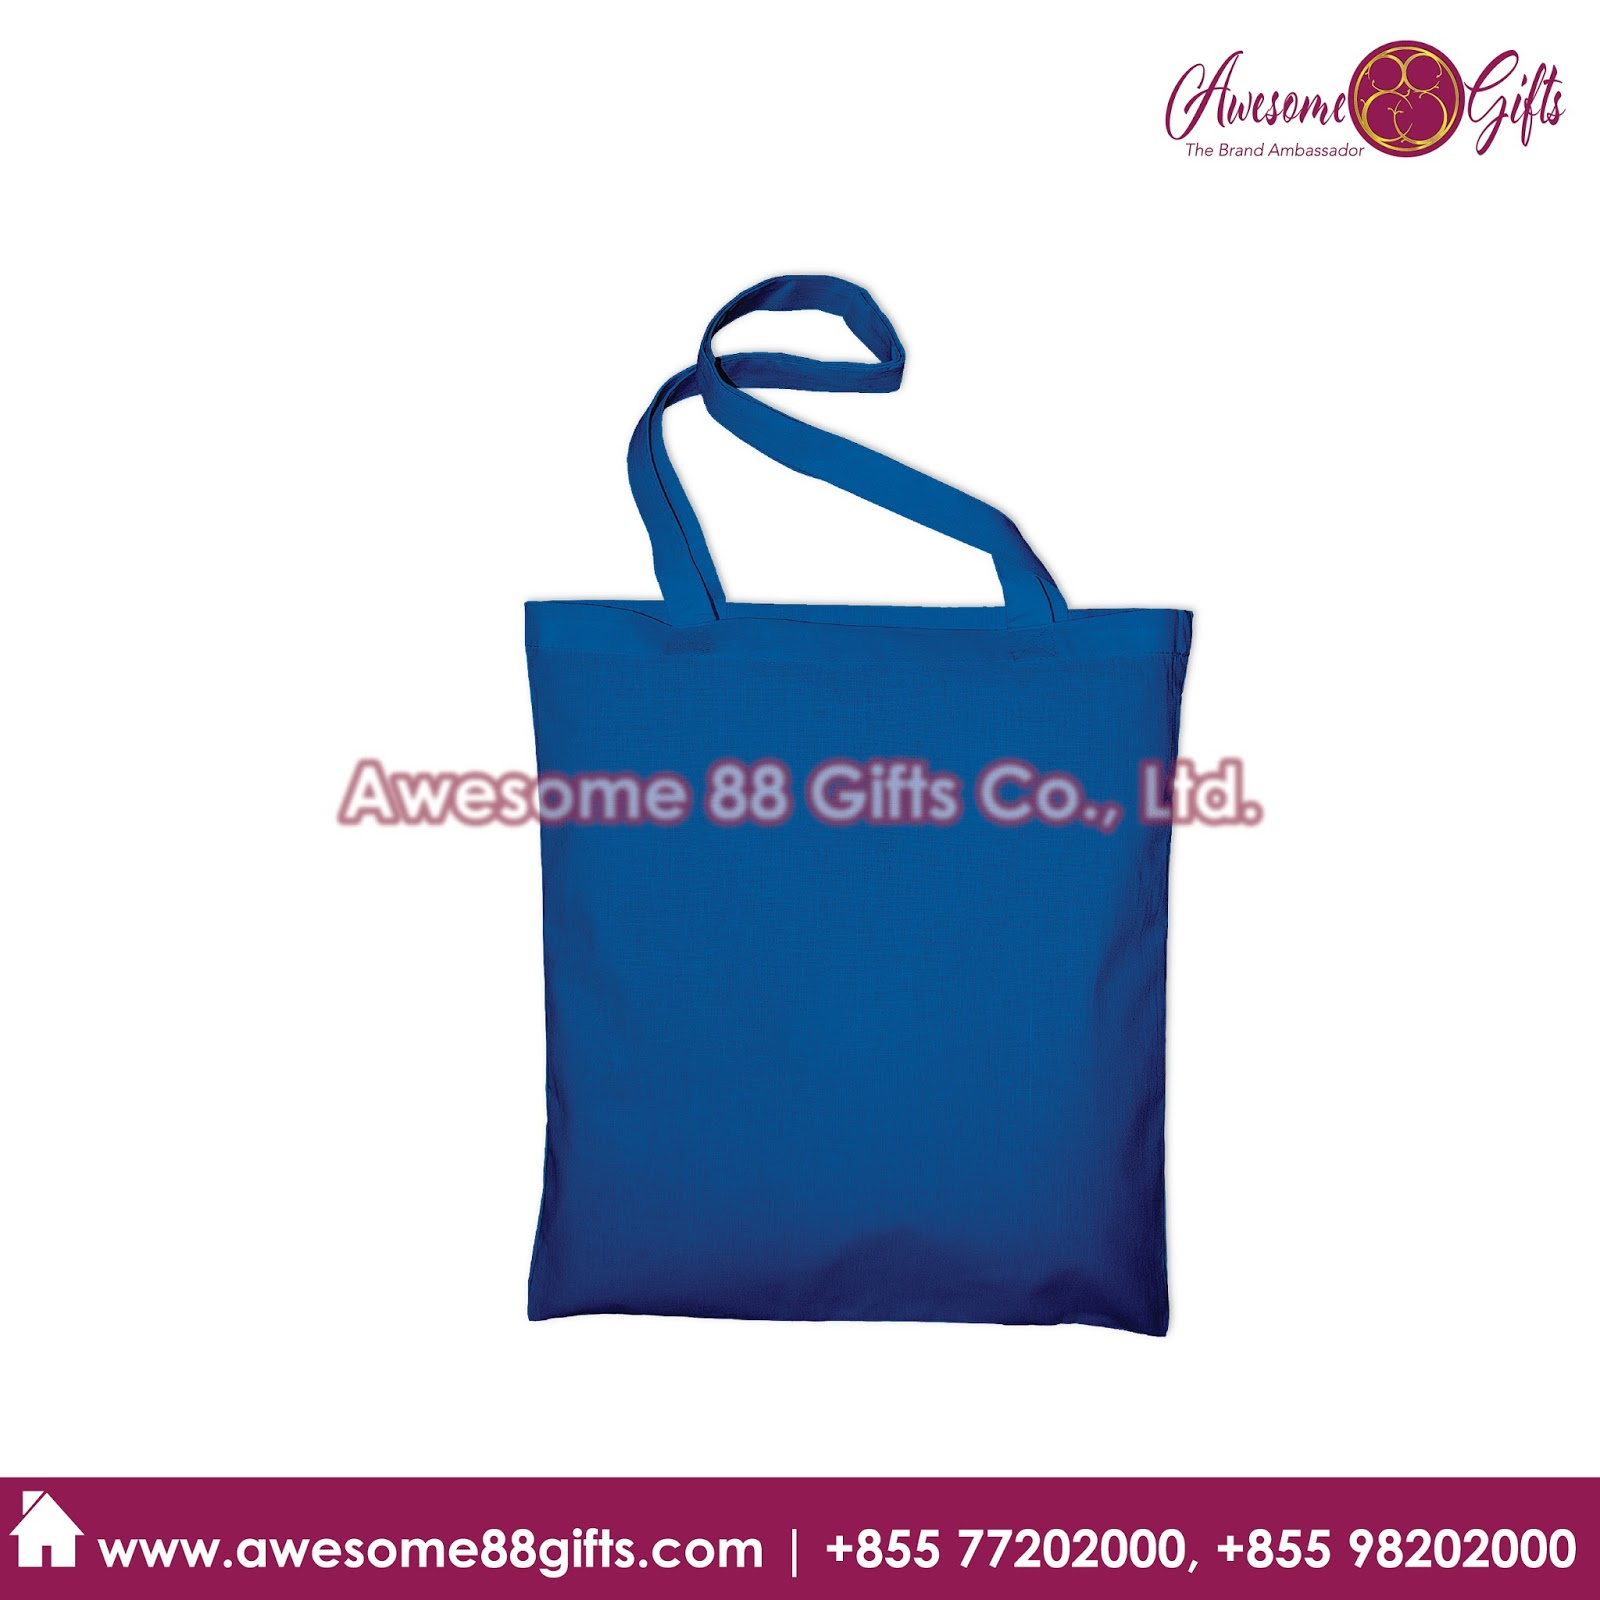 b8d07eaf6694 Promotional Items & Premium Gifts Suppliers Cambodia - Awesome 88 Gifts  Co., Ltd. Reusable Shopping Bags Wholesale, Recycled Grocery ...